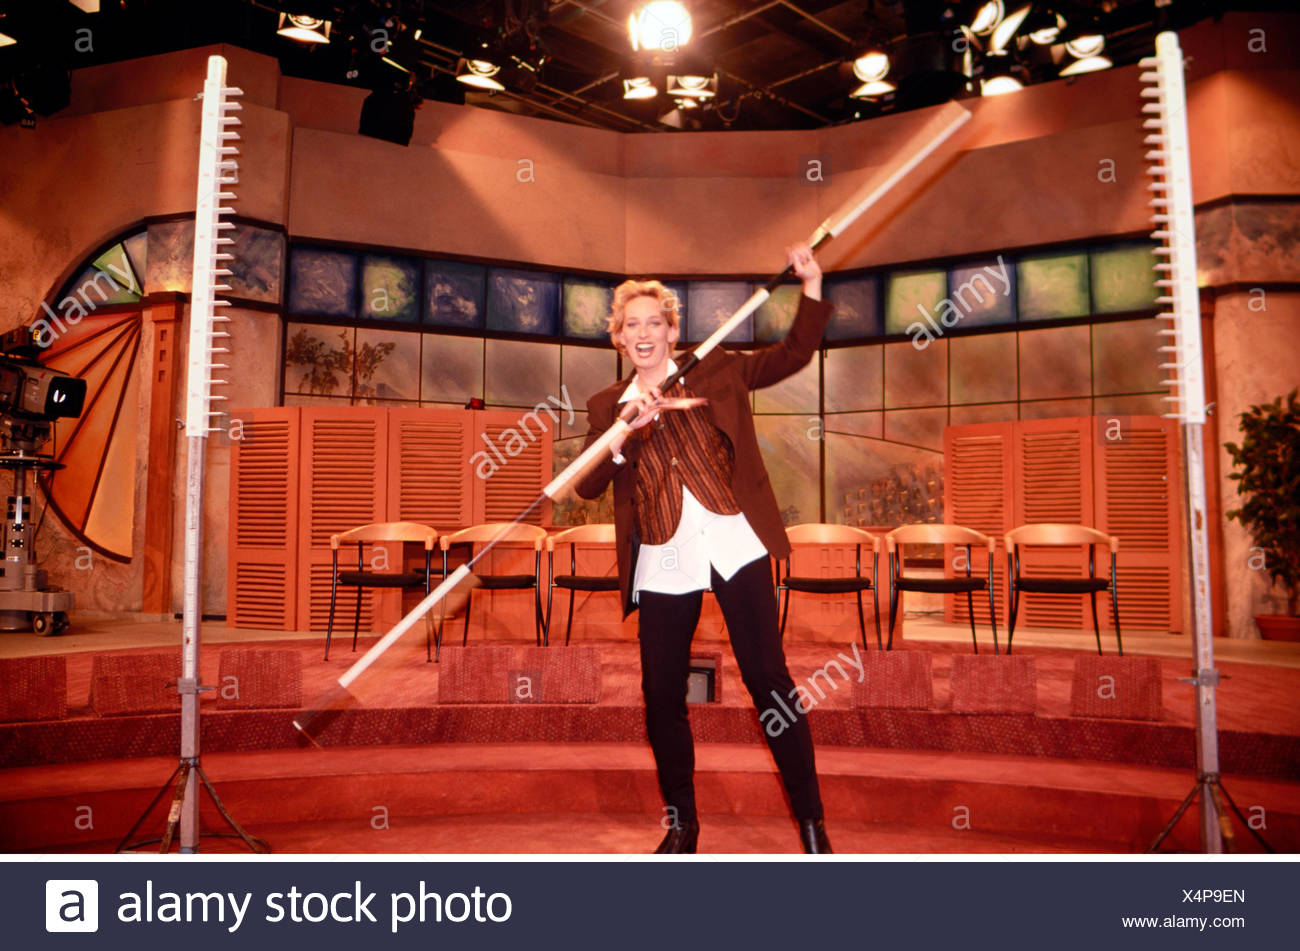 Schaefer, Baerbel, * 16.12.1963, German presenter, half length, during the recording of the 250th episode of her eponymous TV show, 6.11.1996, Additional-Rights-Clearances-NA - Stock Image